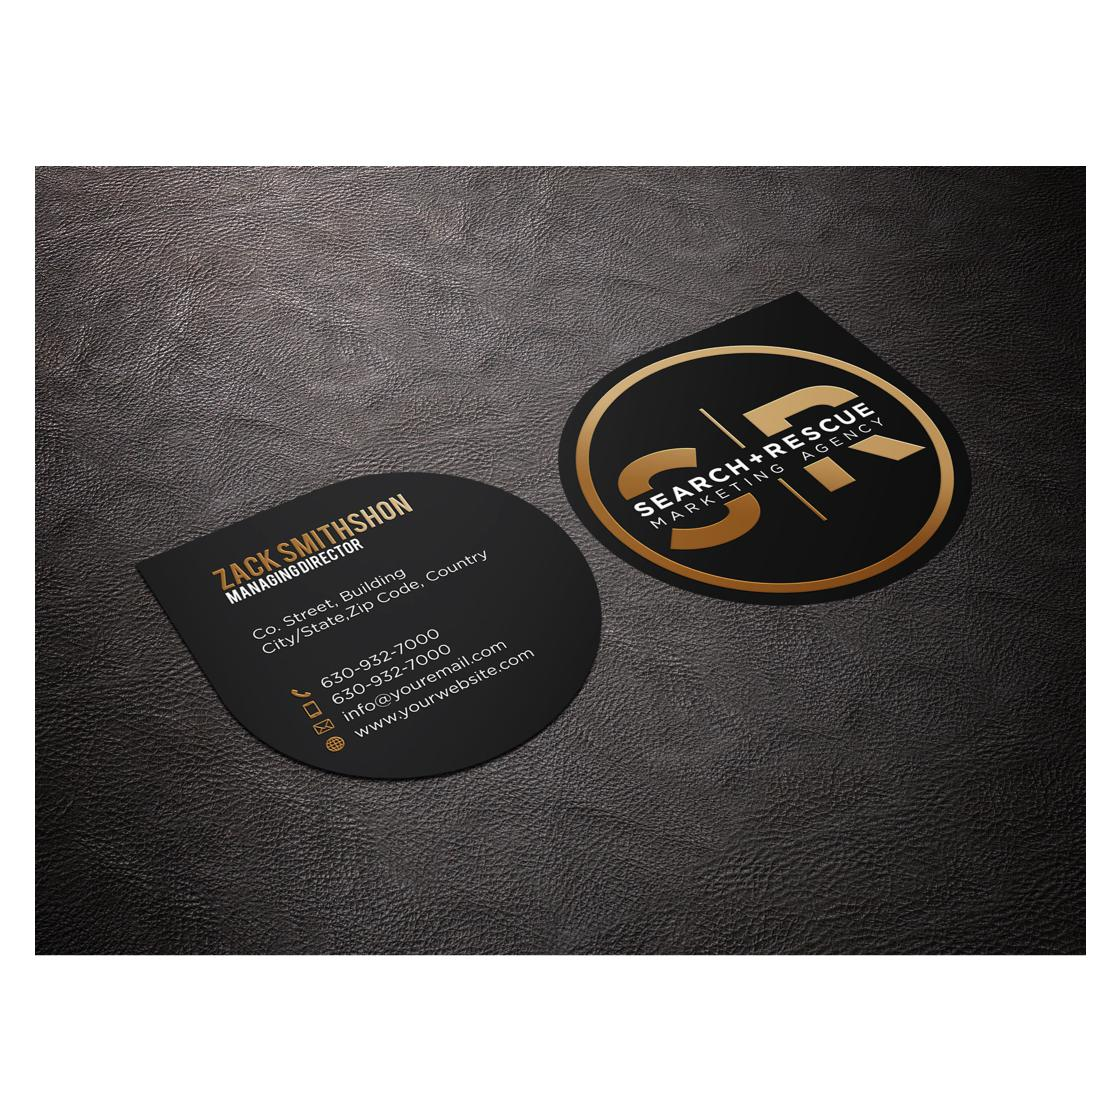 custom business card design by AkGraphics